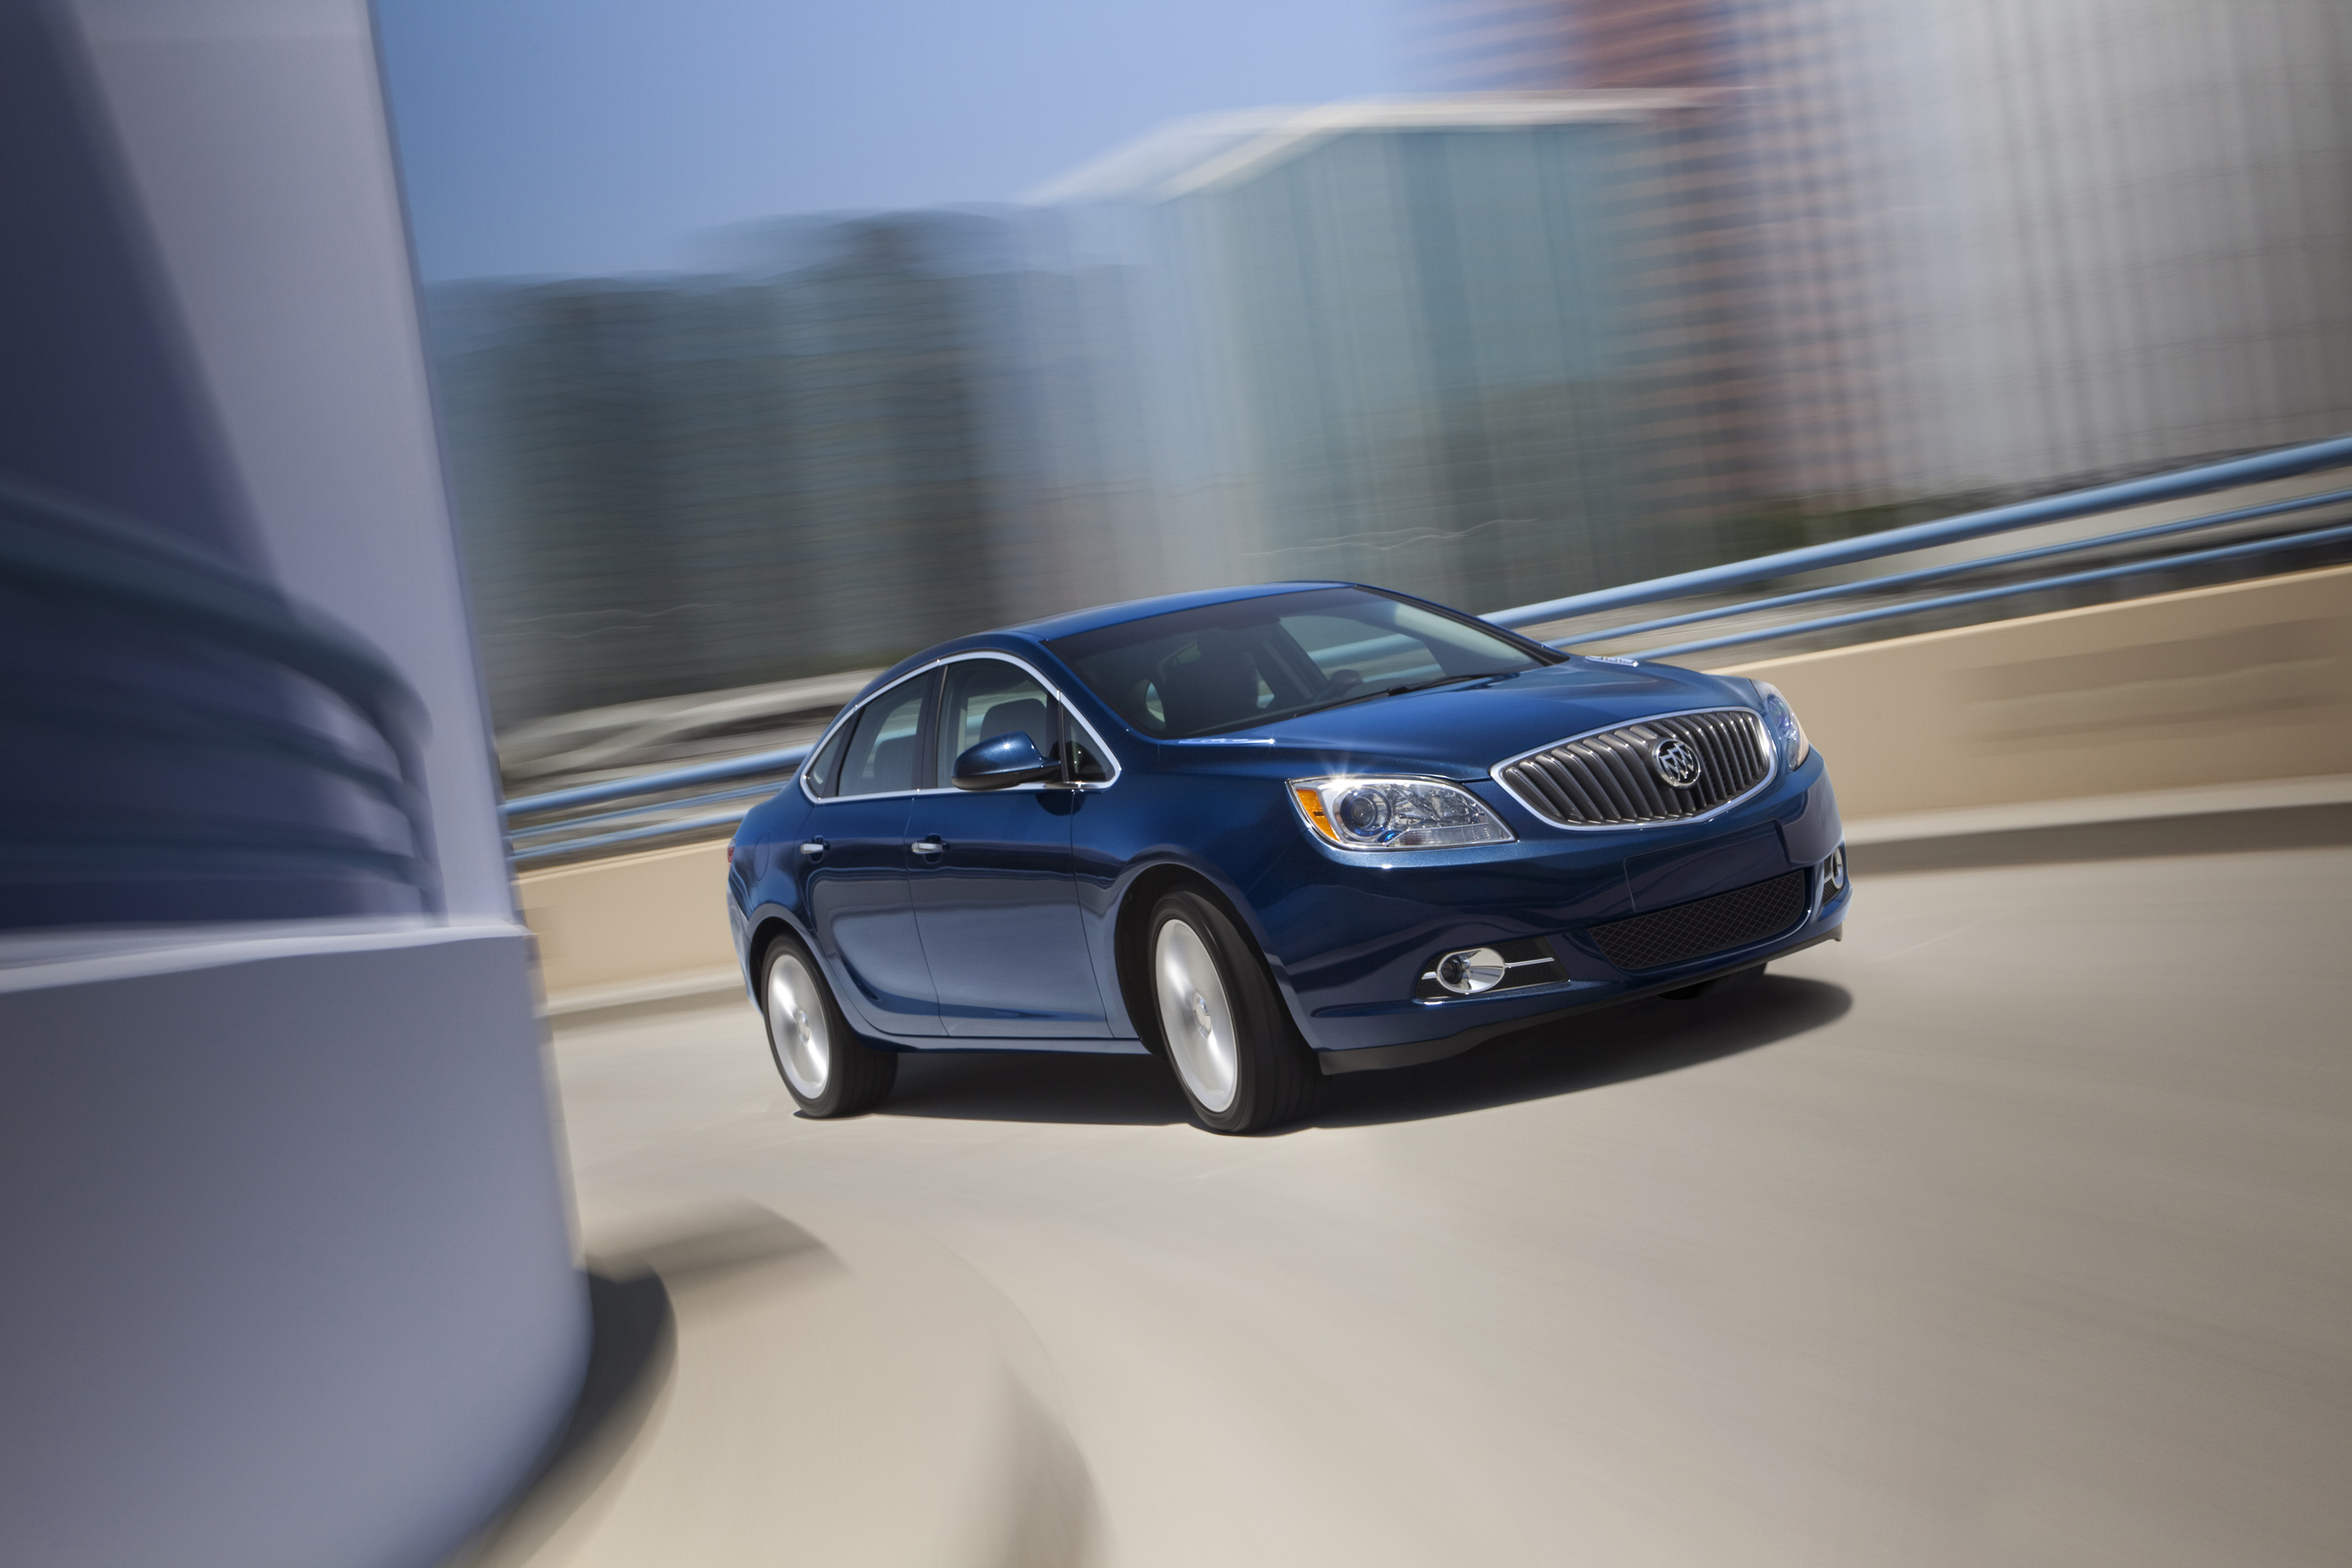 finds place the regal auto money in review turbo snow its story buick